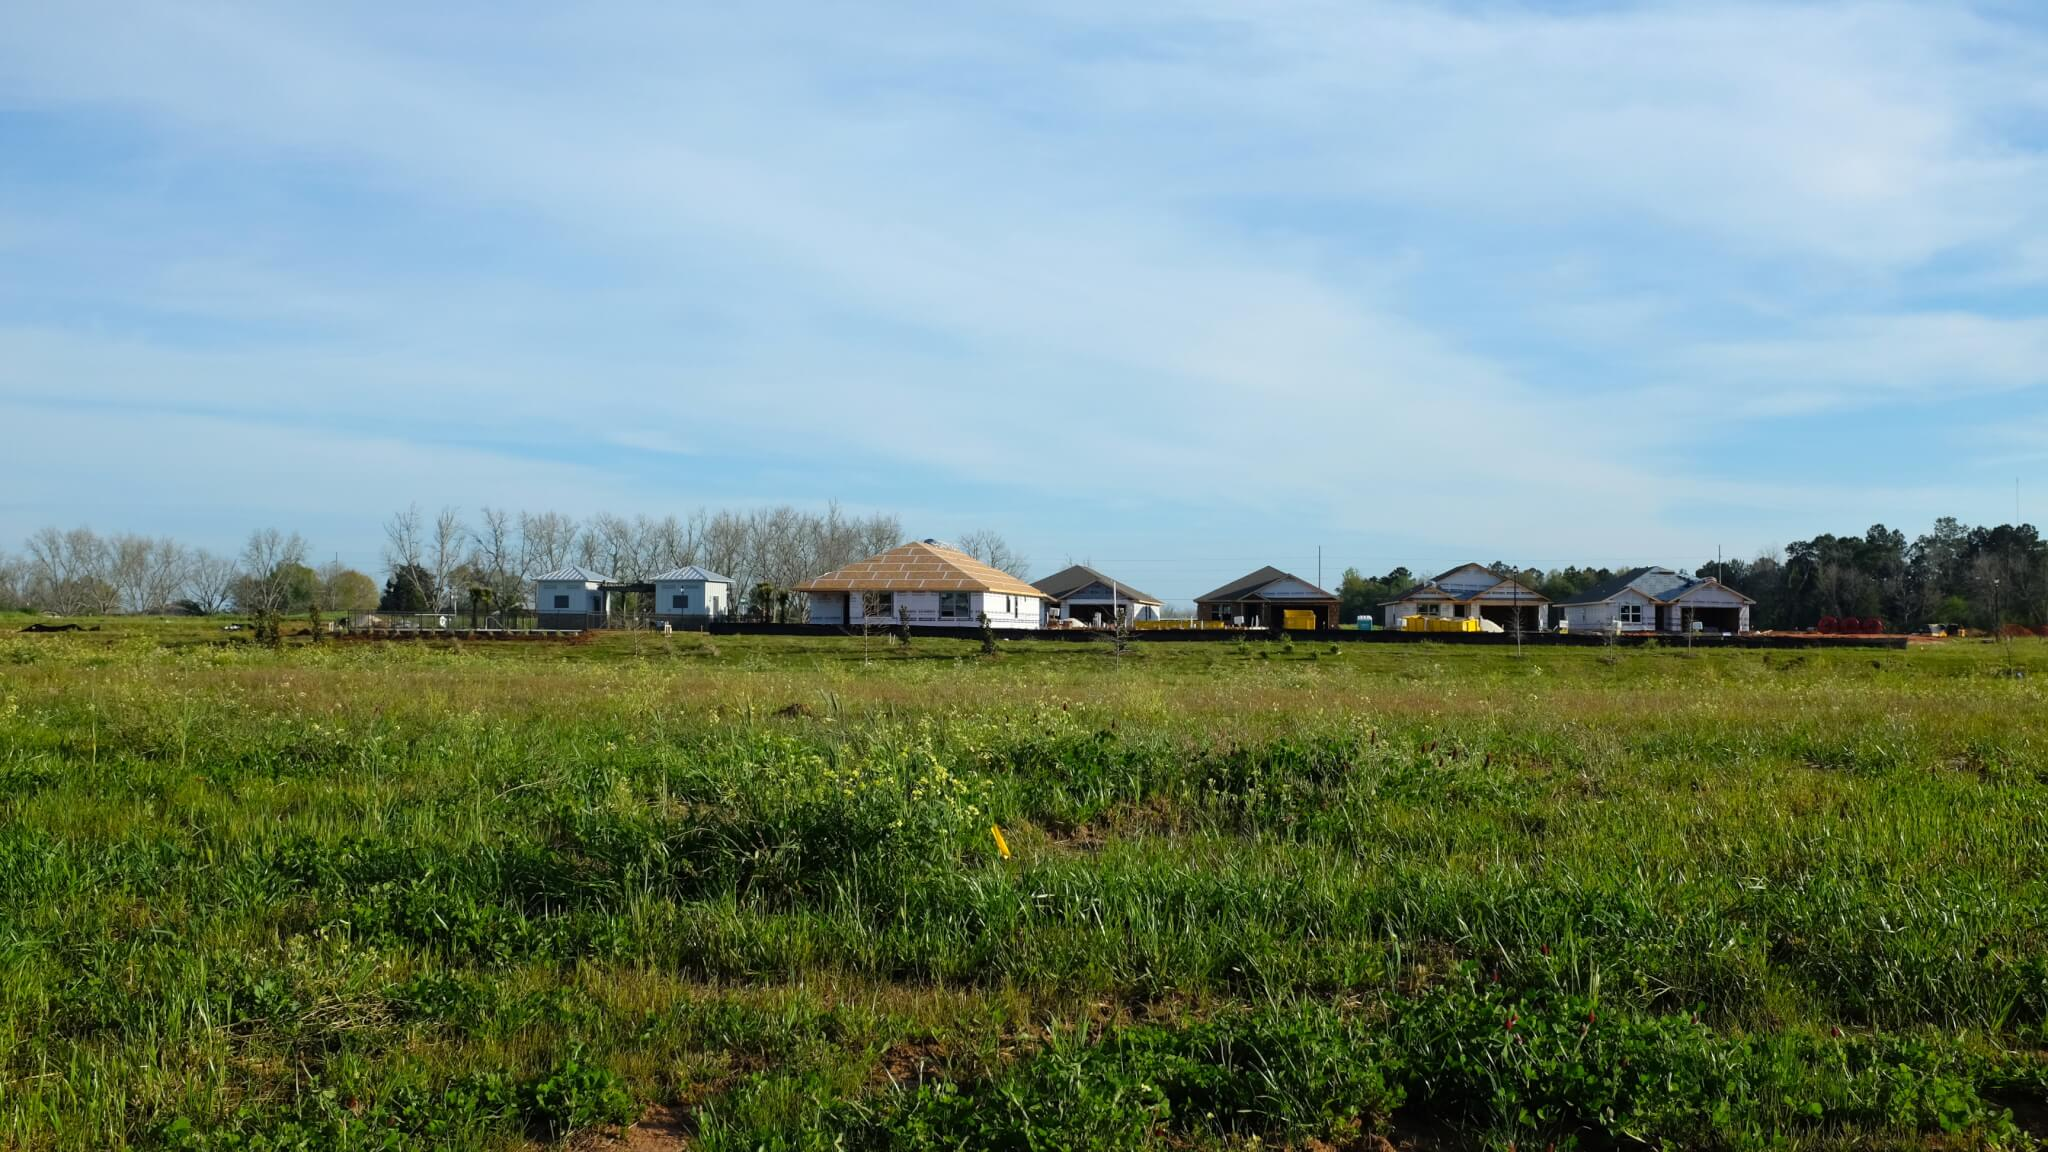 Winged Foot New Homes by DR Horton in Daphne Alabama - wide open spaces